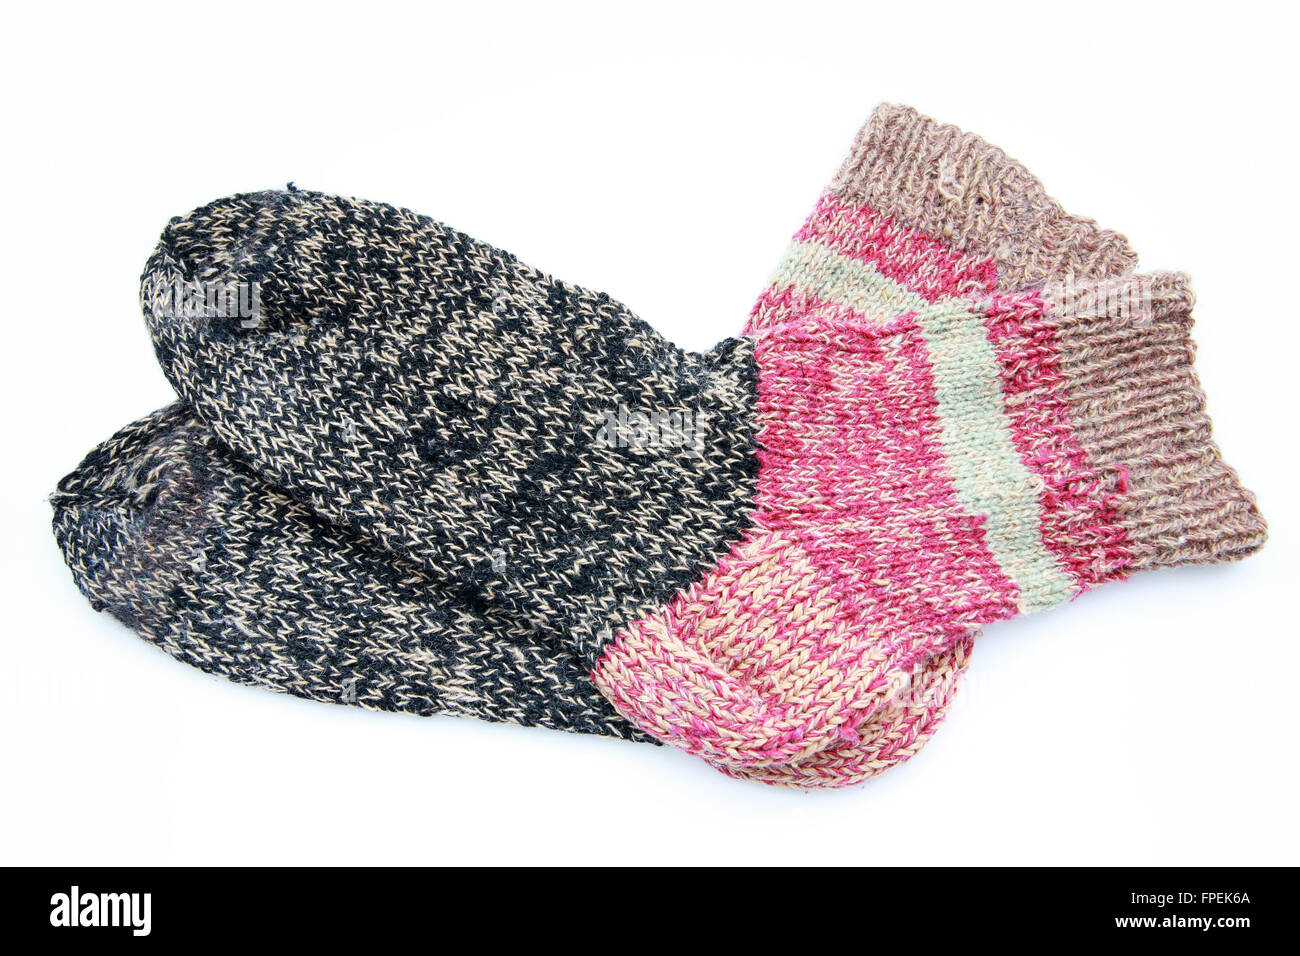 Knitted wool socks on a white background - Stock Image